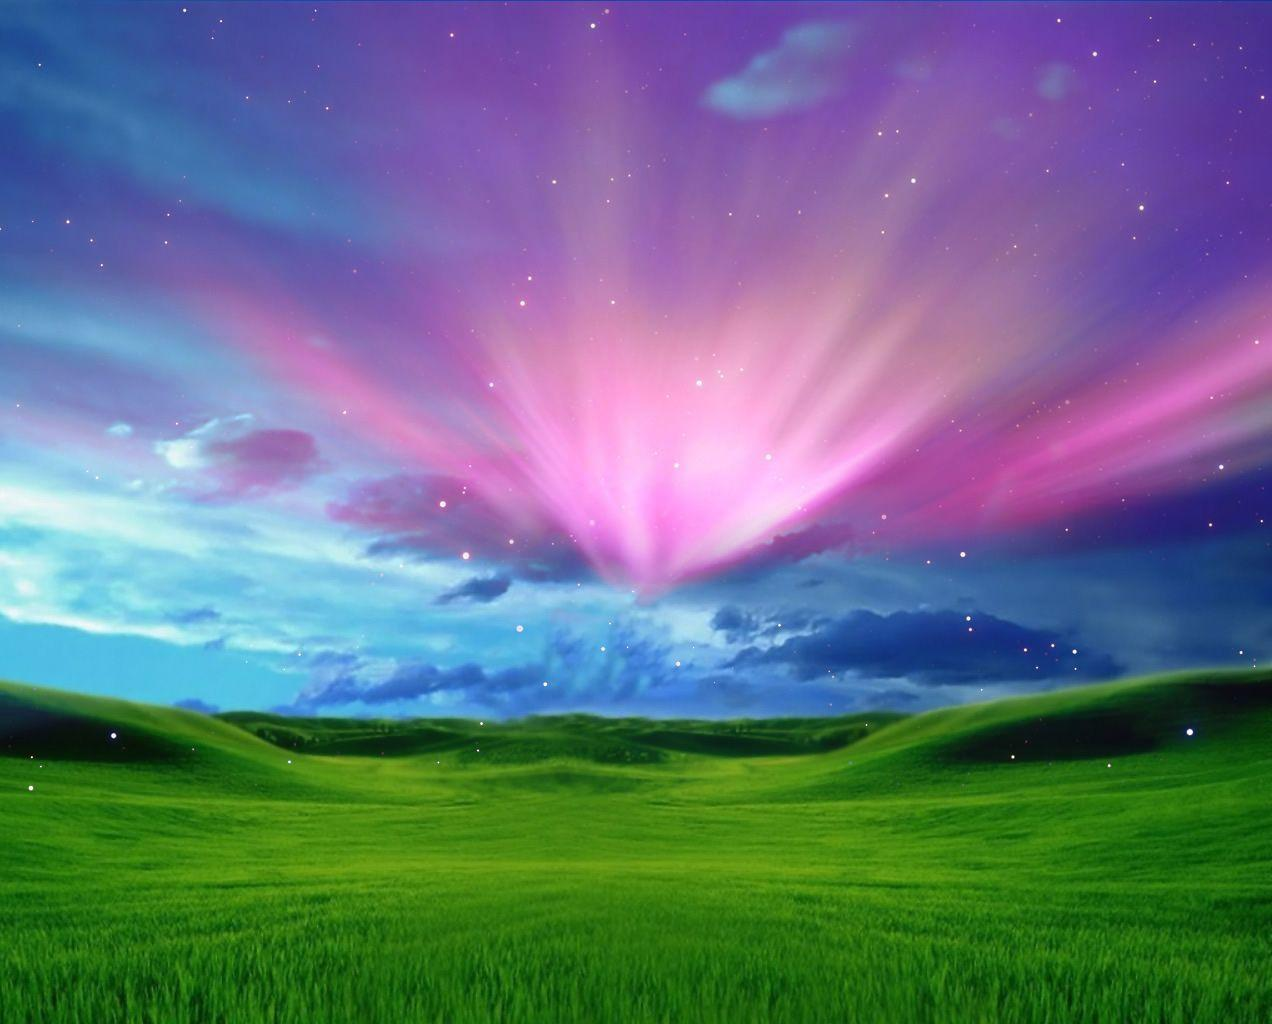 Nature Backgrounds For Mac - Wallpaper Cave